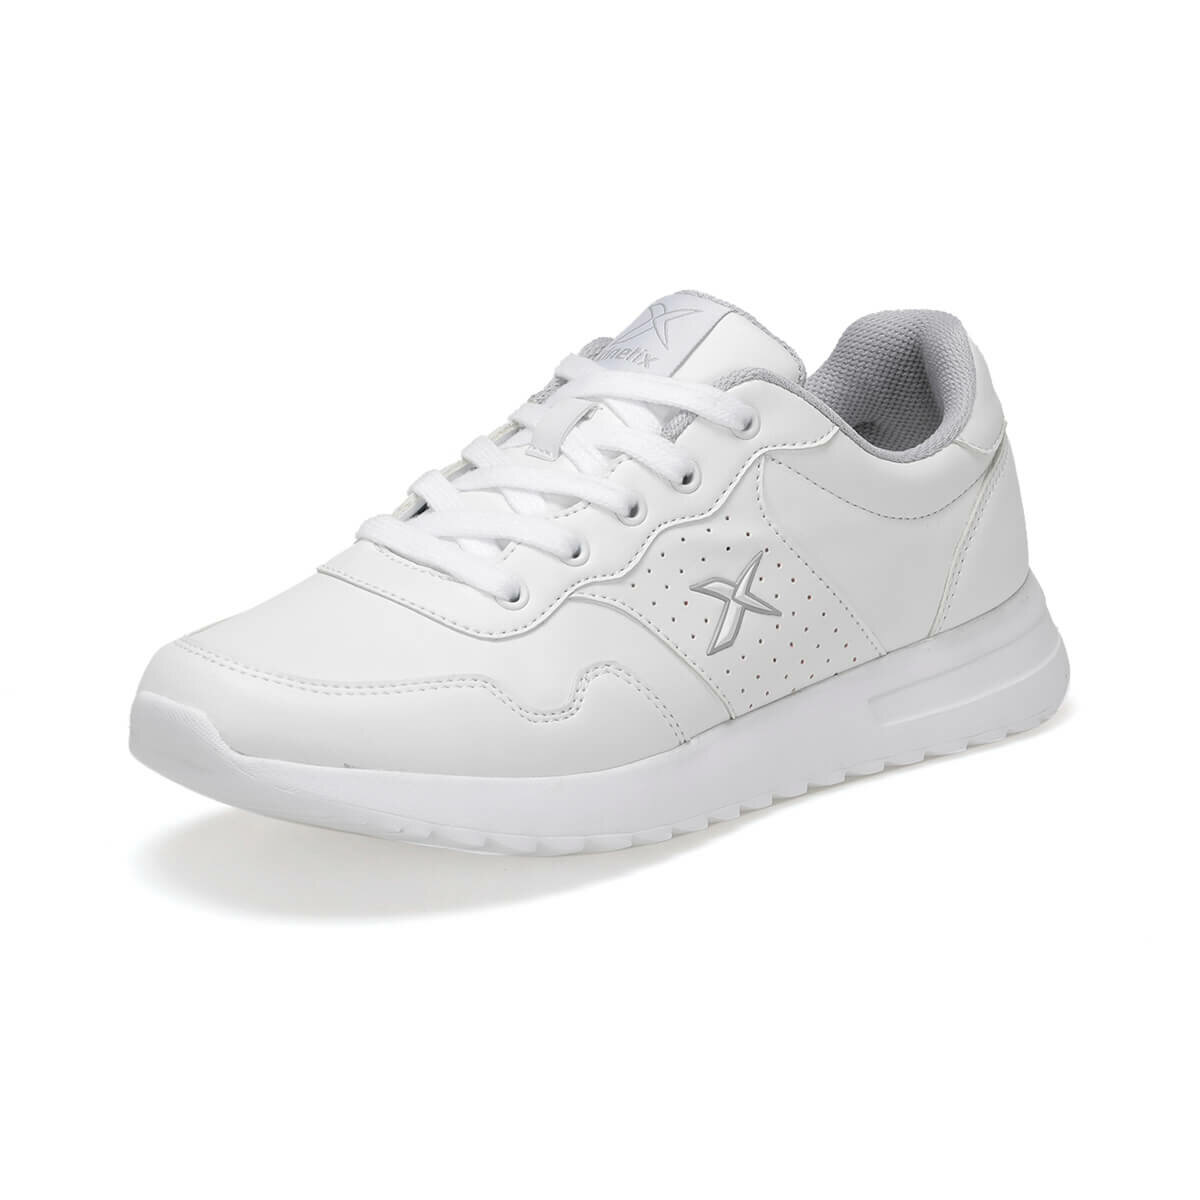 FLO FABIA PU M 9PR White Men 'S Sneaker Shoes KINETIX